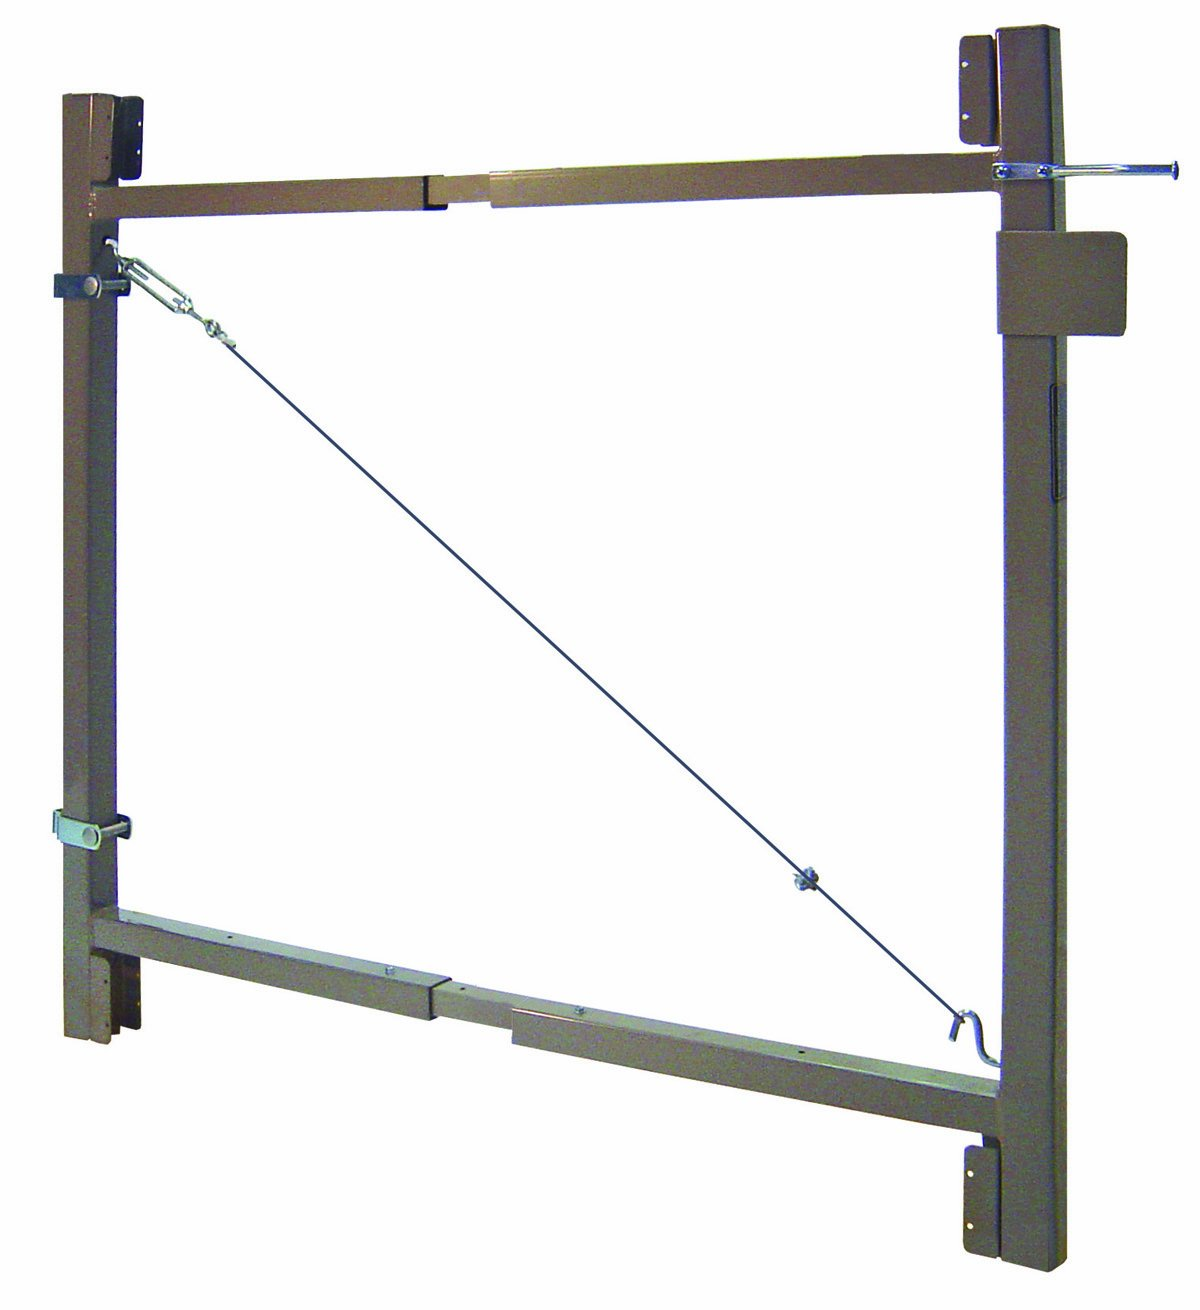 Adjust-A-Gate Steel Frame Gate Building Kit (36-60 wide openings, 3' - 4' high fence) 3' - 4' high fence) AG 36-36